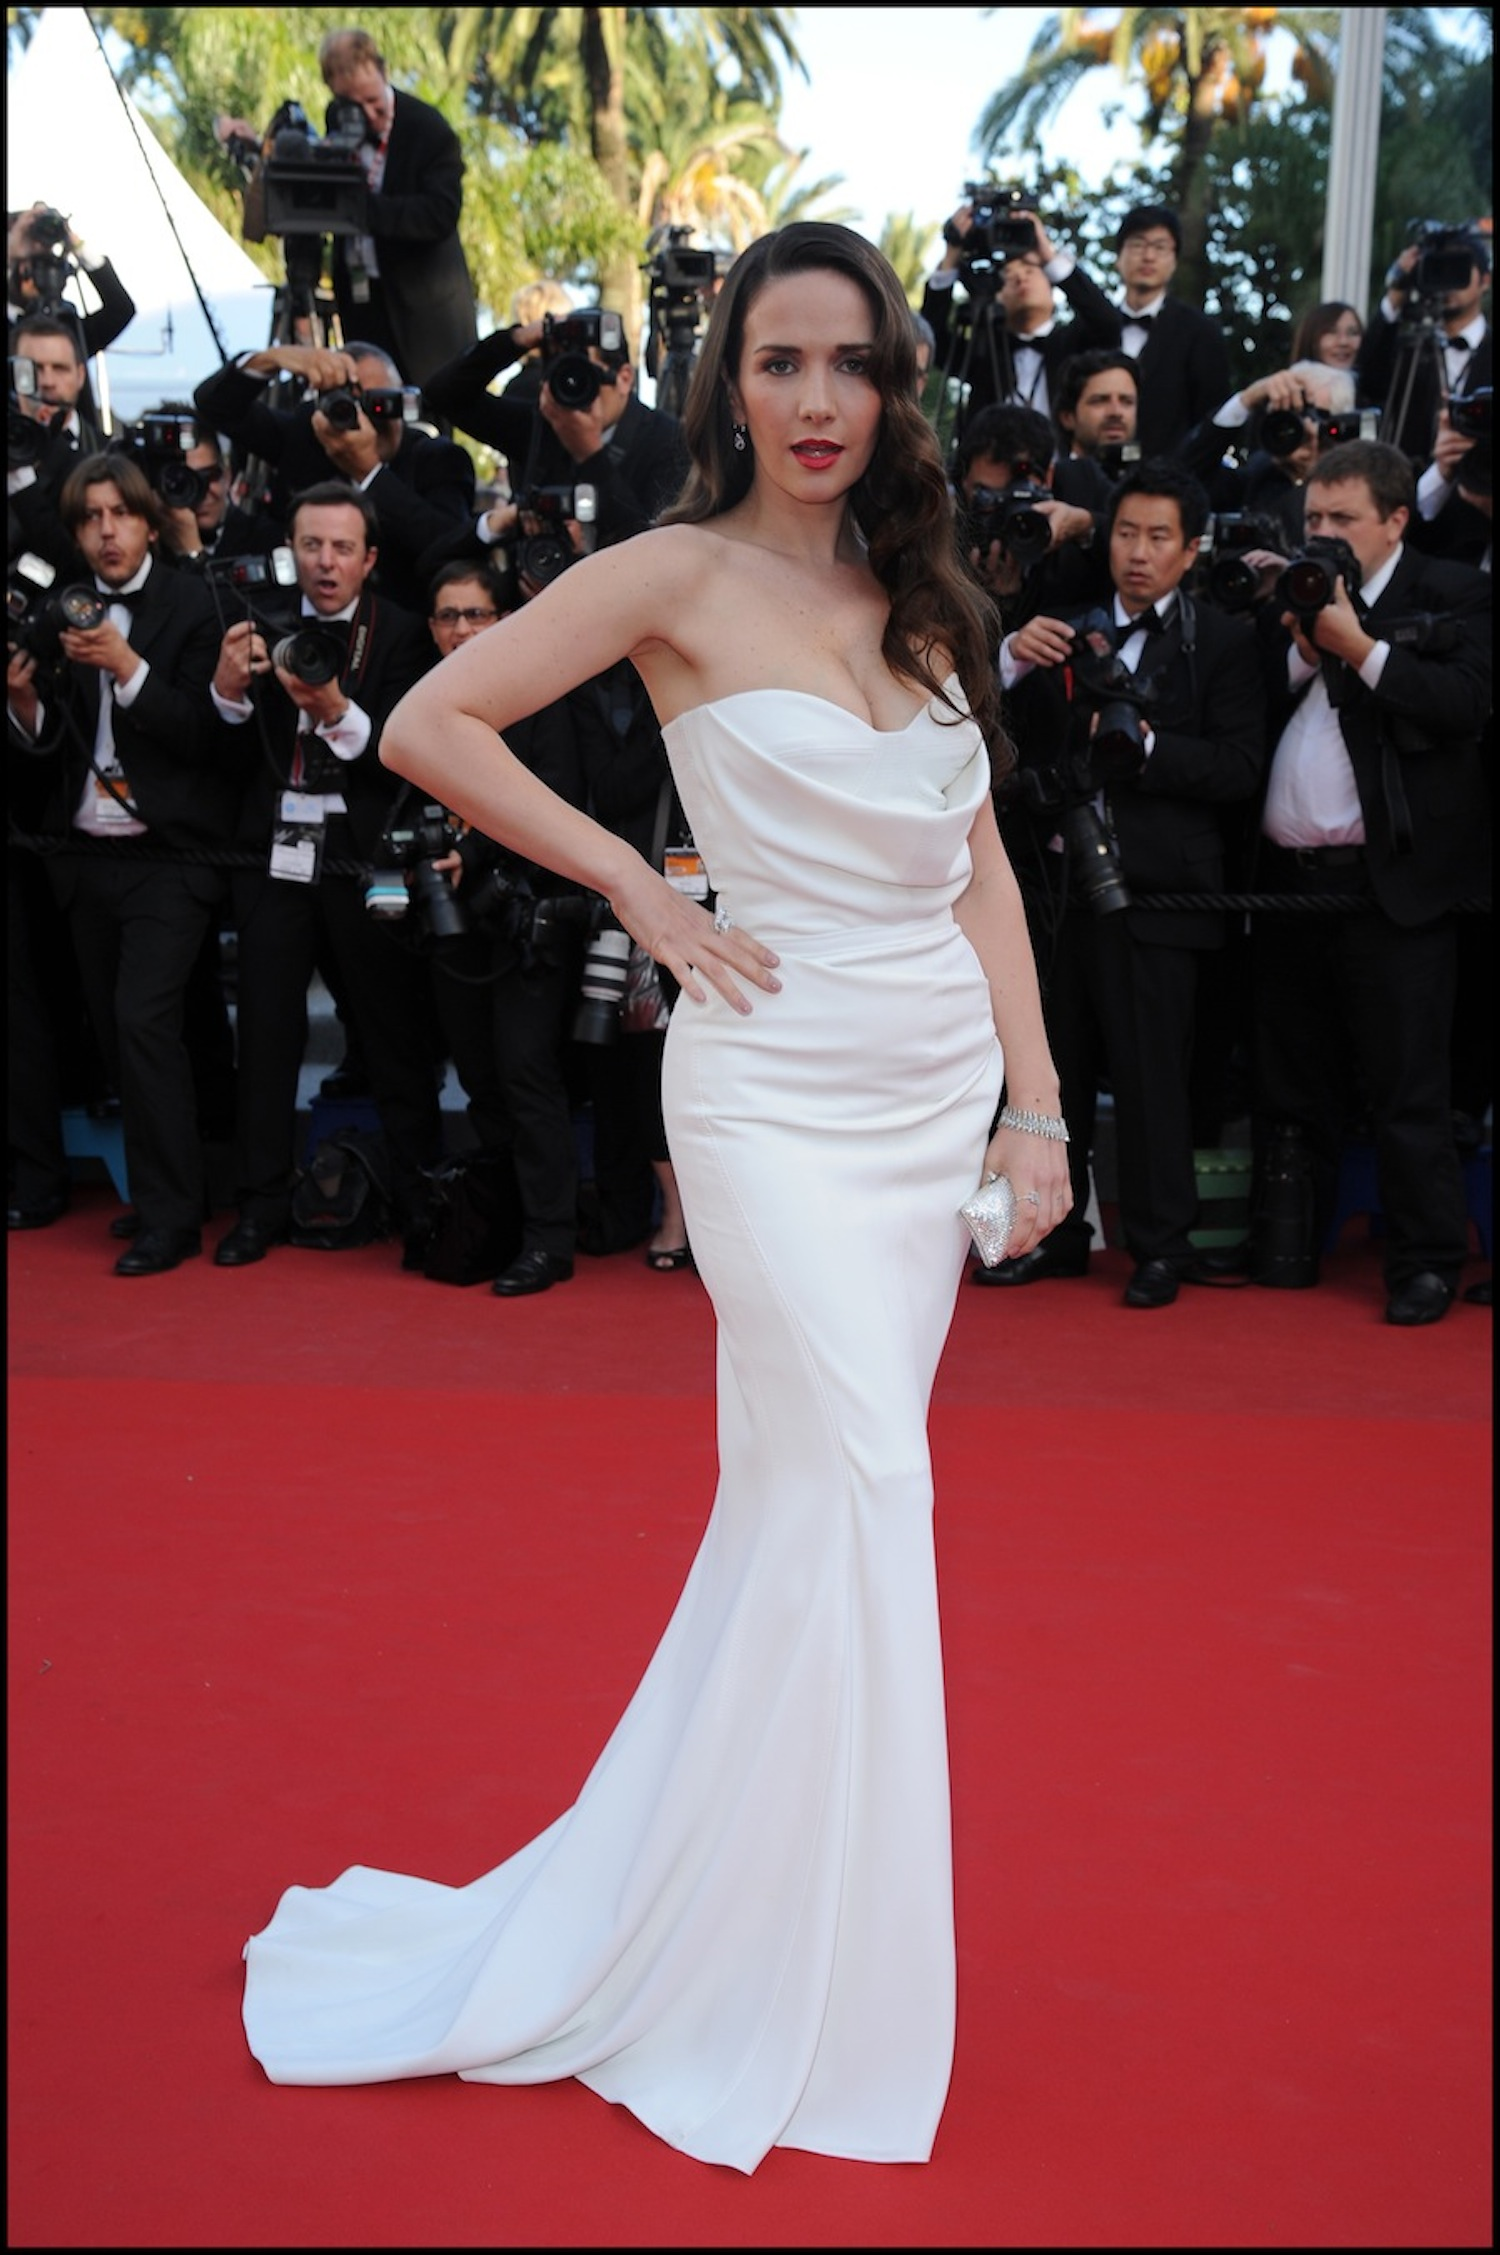 fsbpt114.7b-natalia-oreiro-red-carpet-cannes-2012